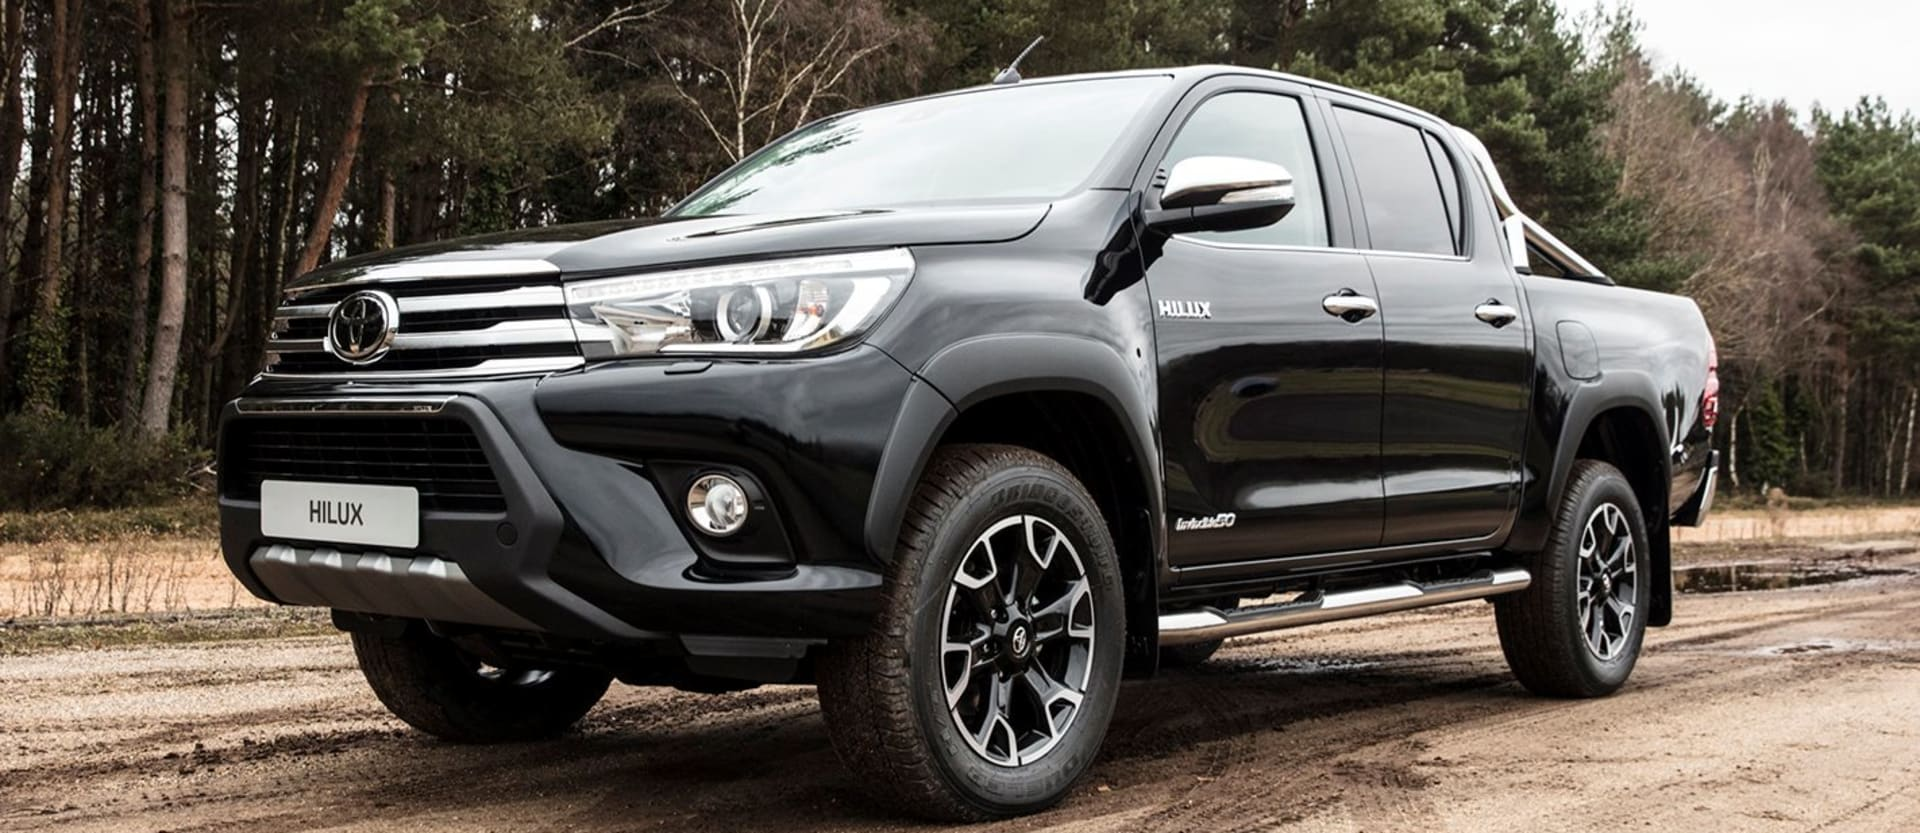 Toyota Hilux Special Edition Jpg